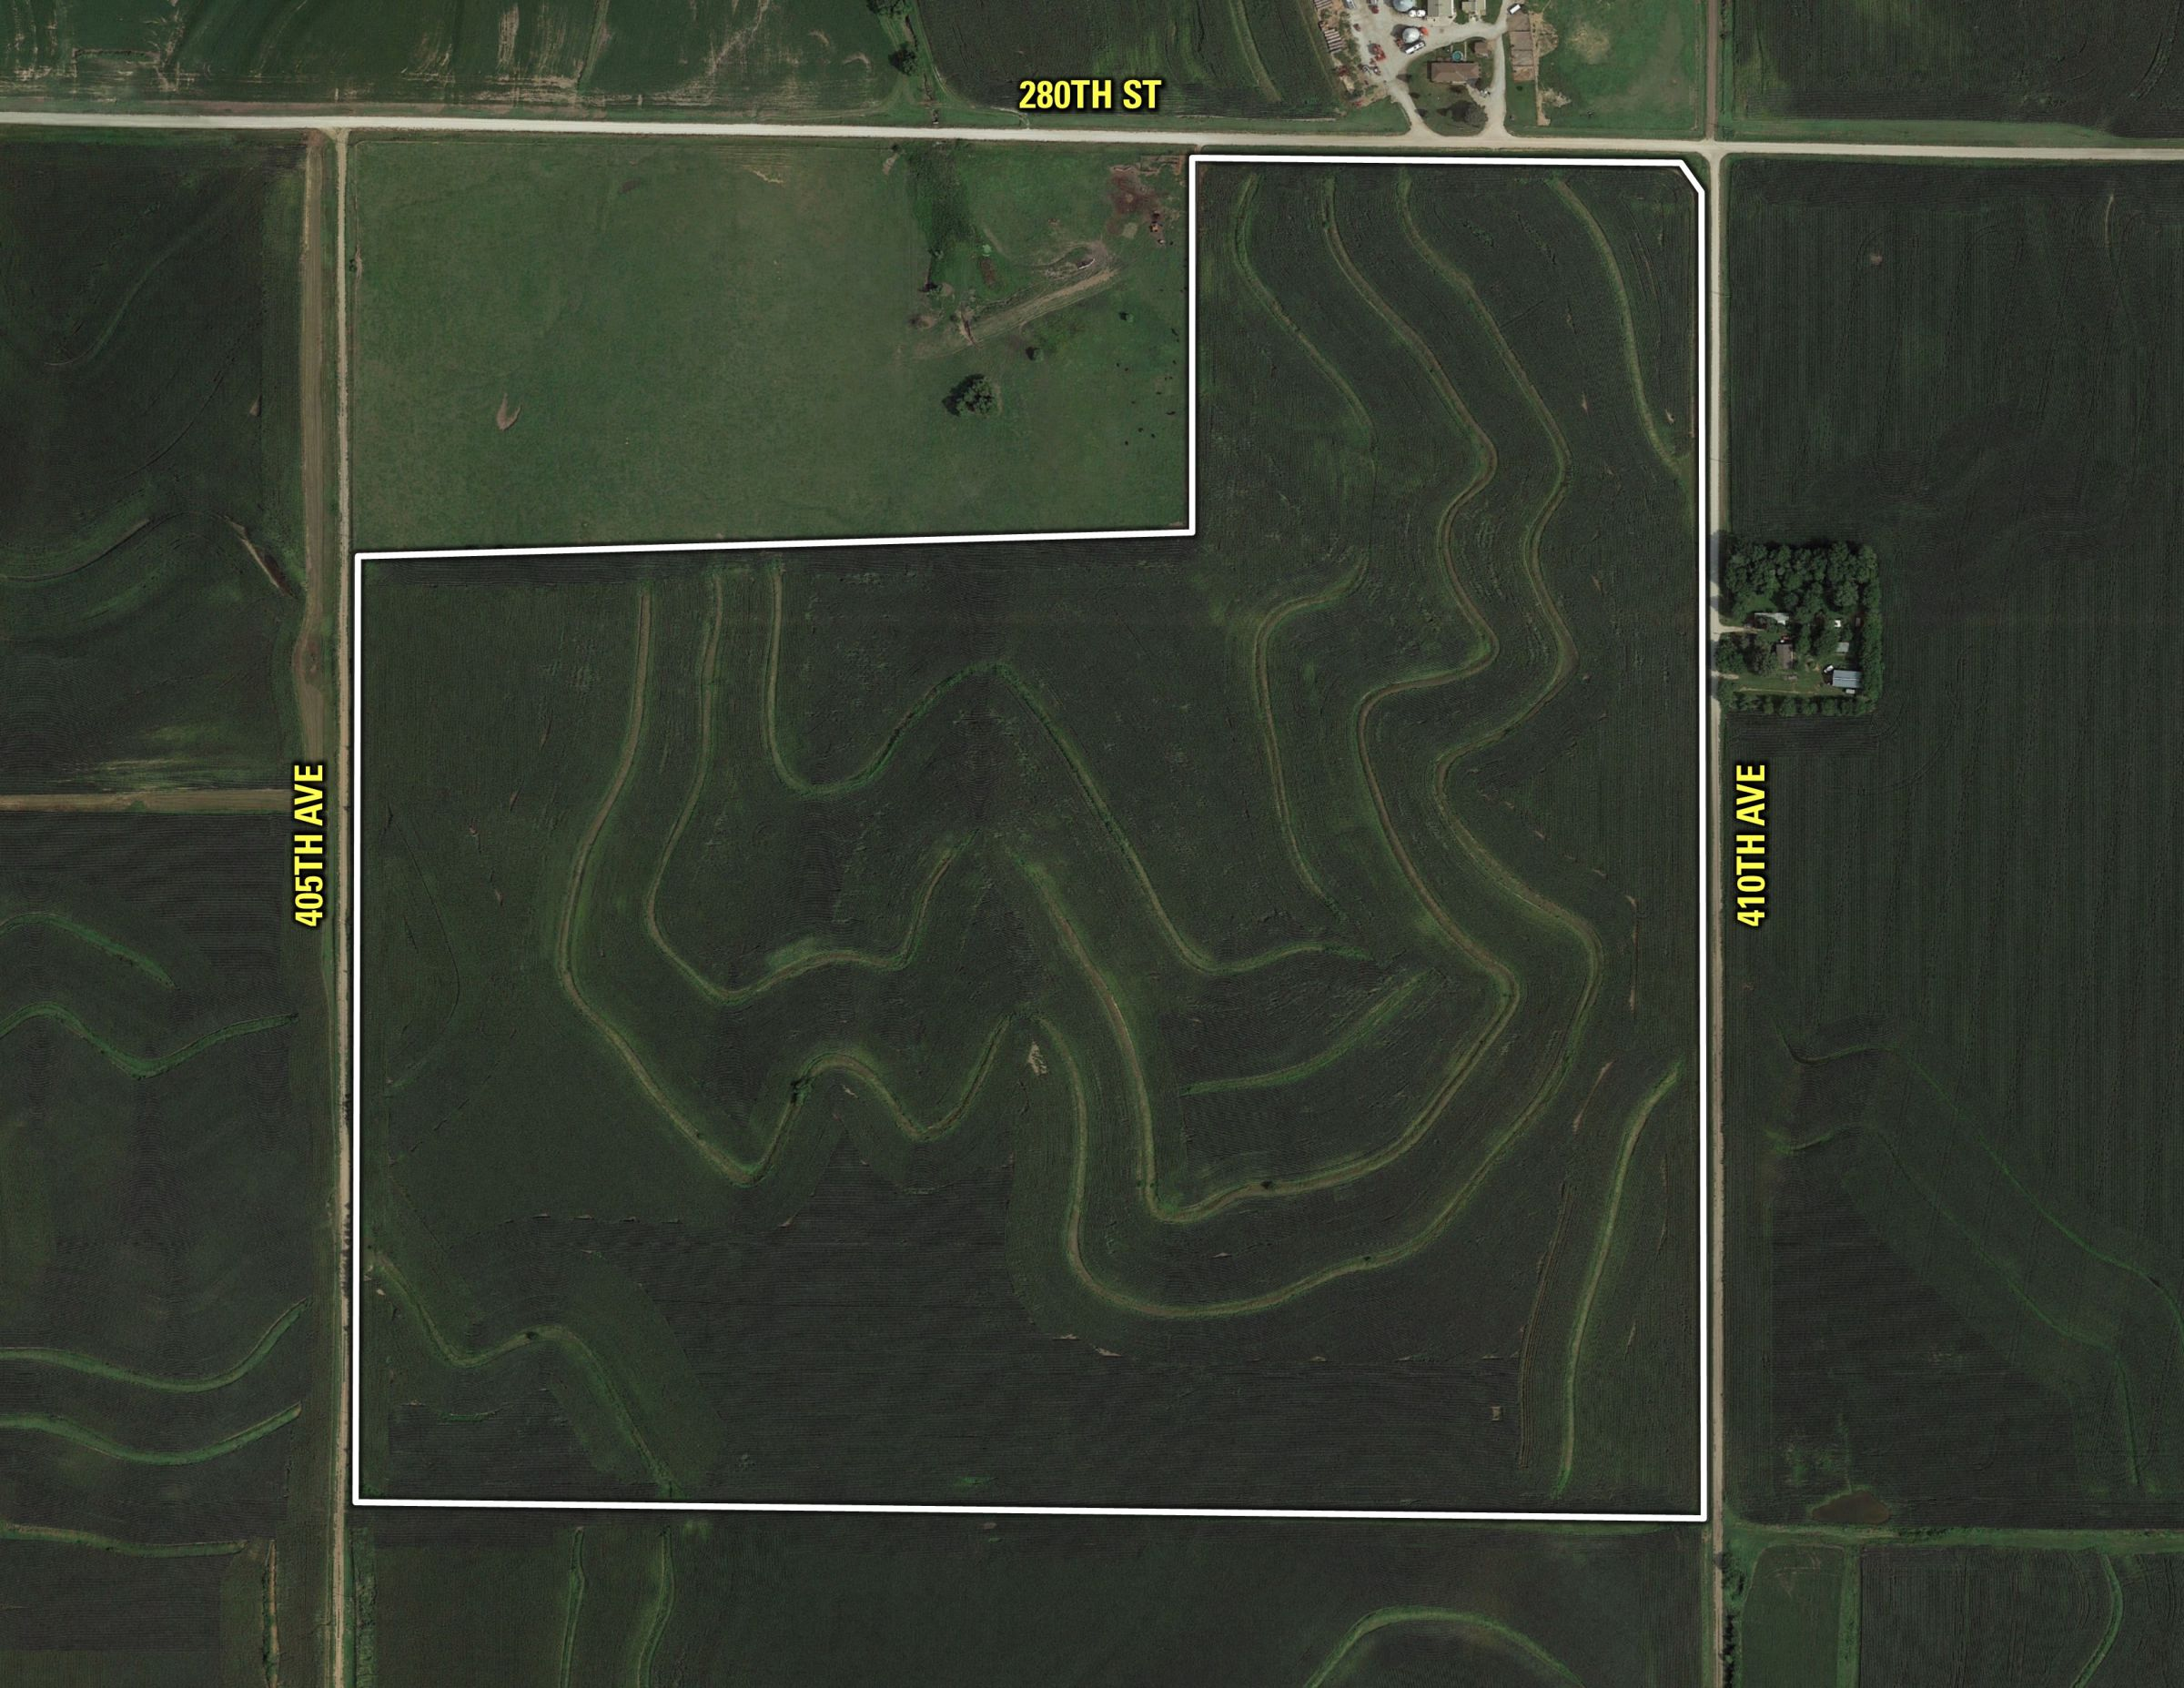 land-fremont-county-iowa-128-acres-listing-number-15170-0-2020-09-14-161916.jpg